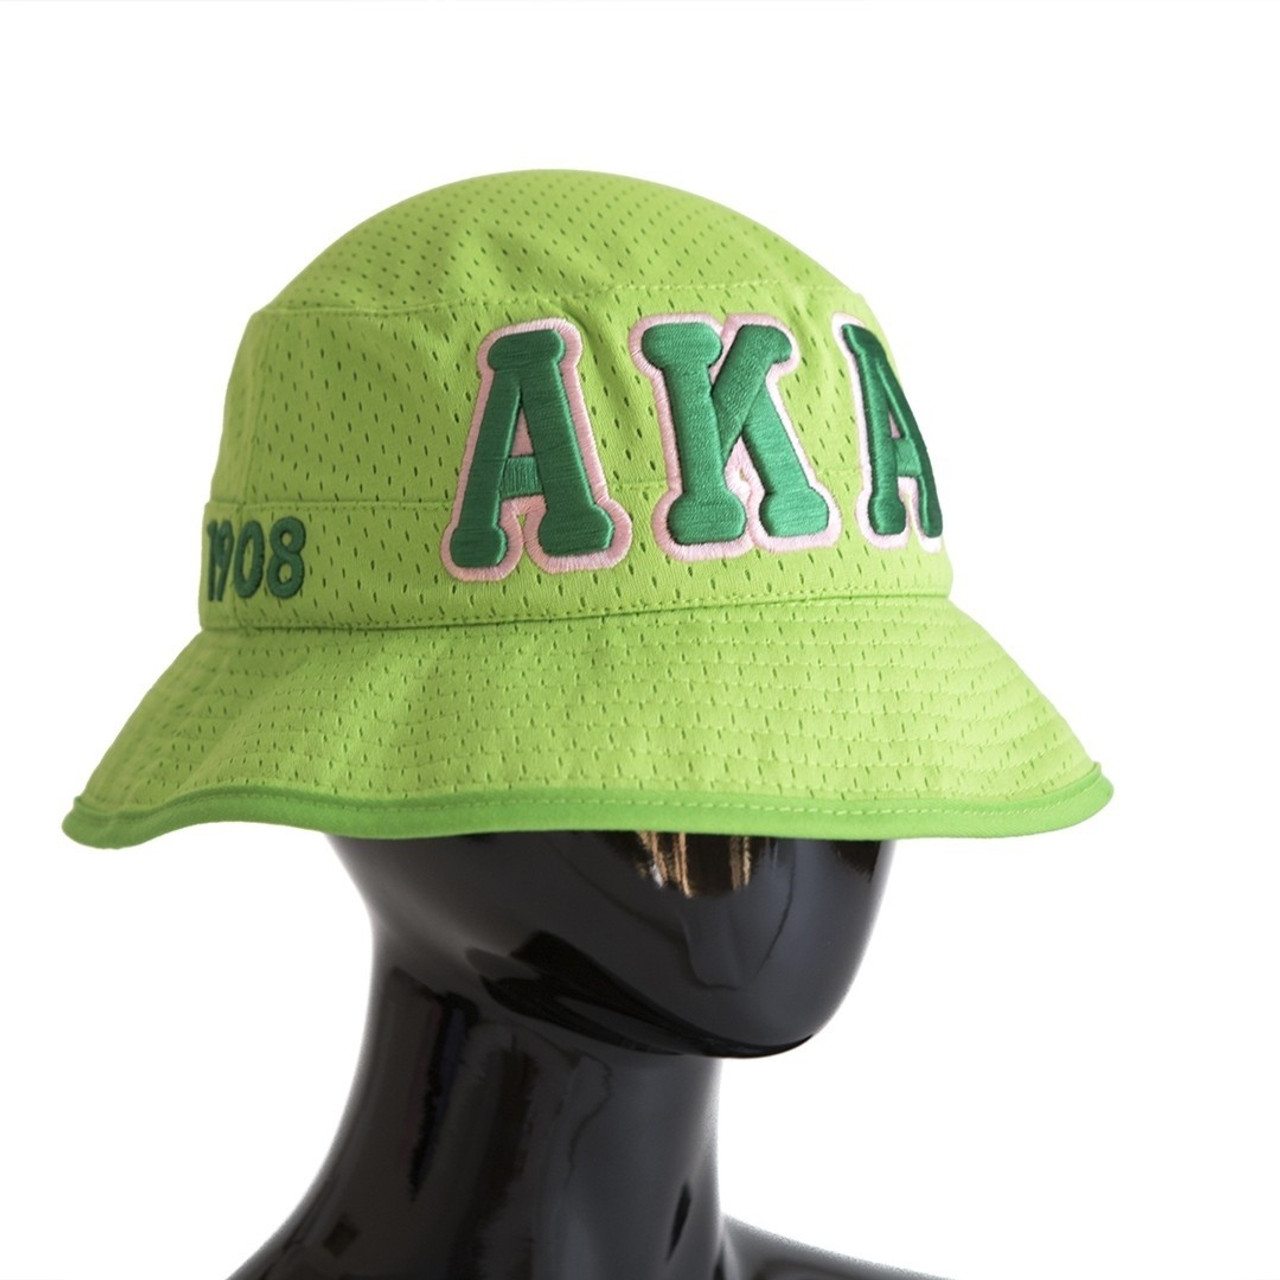 Aka Green Embroidered Bucket Hat Prime Heritage Gifts